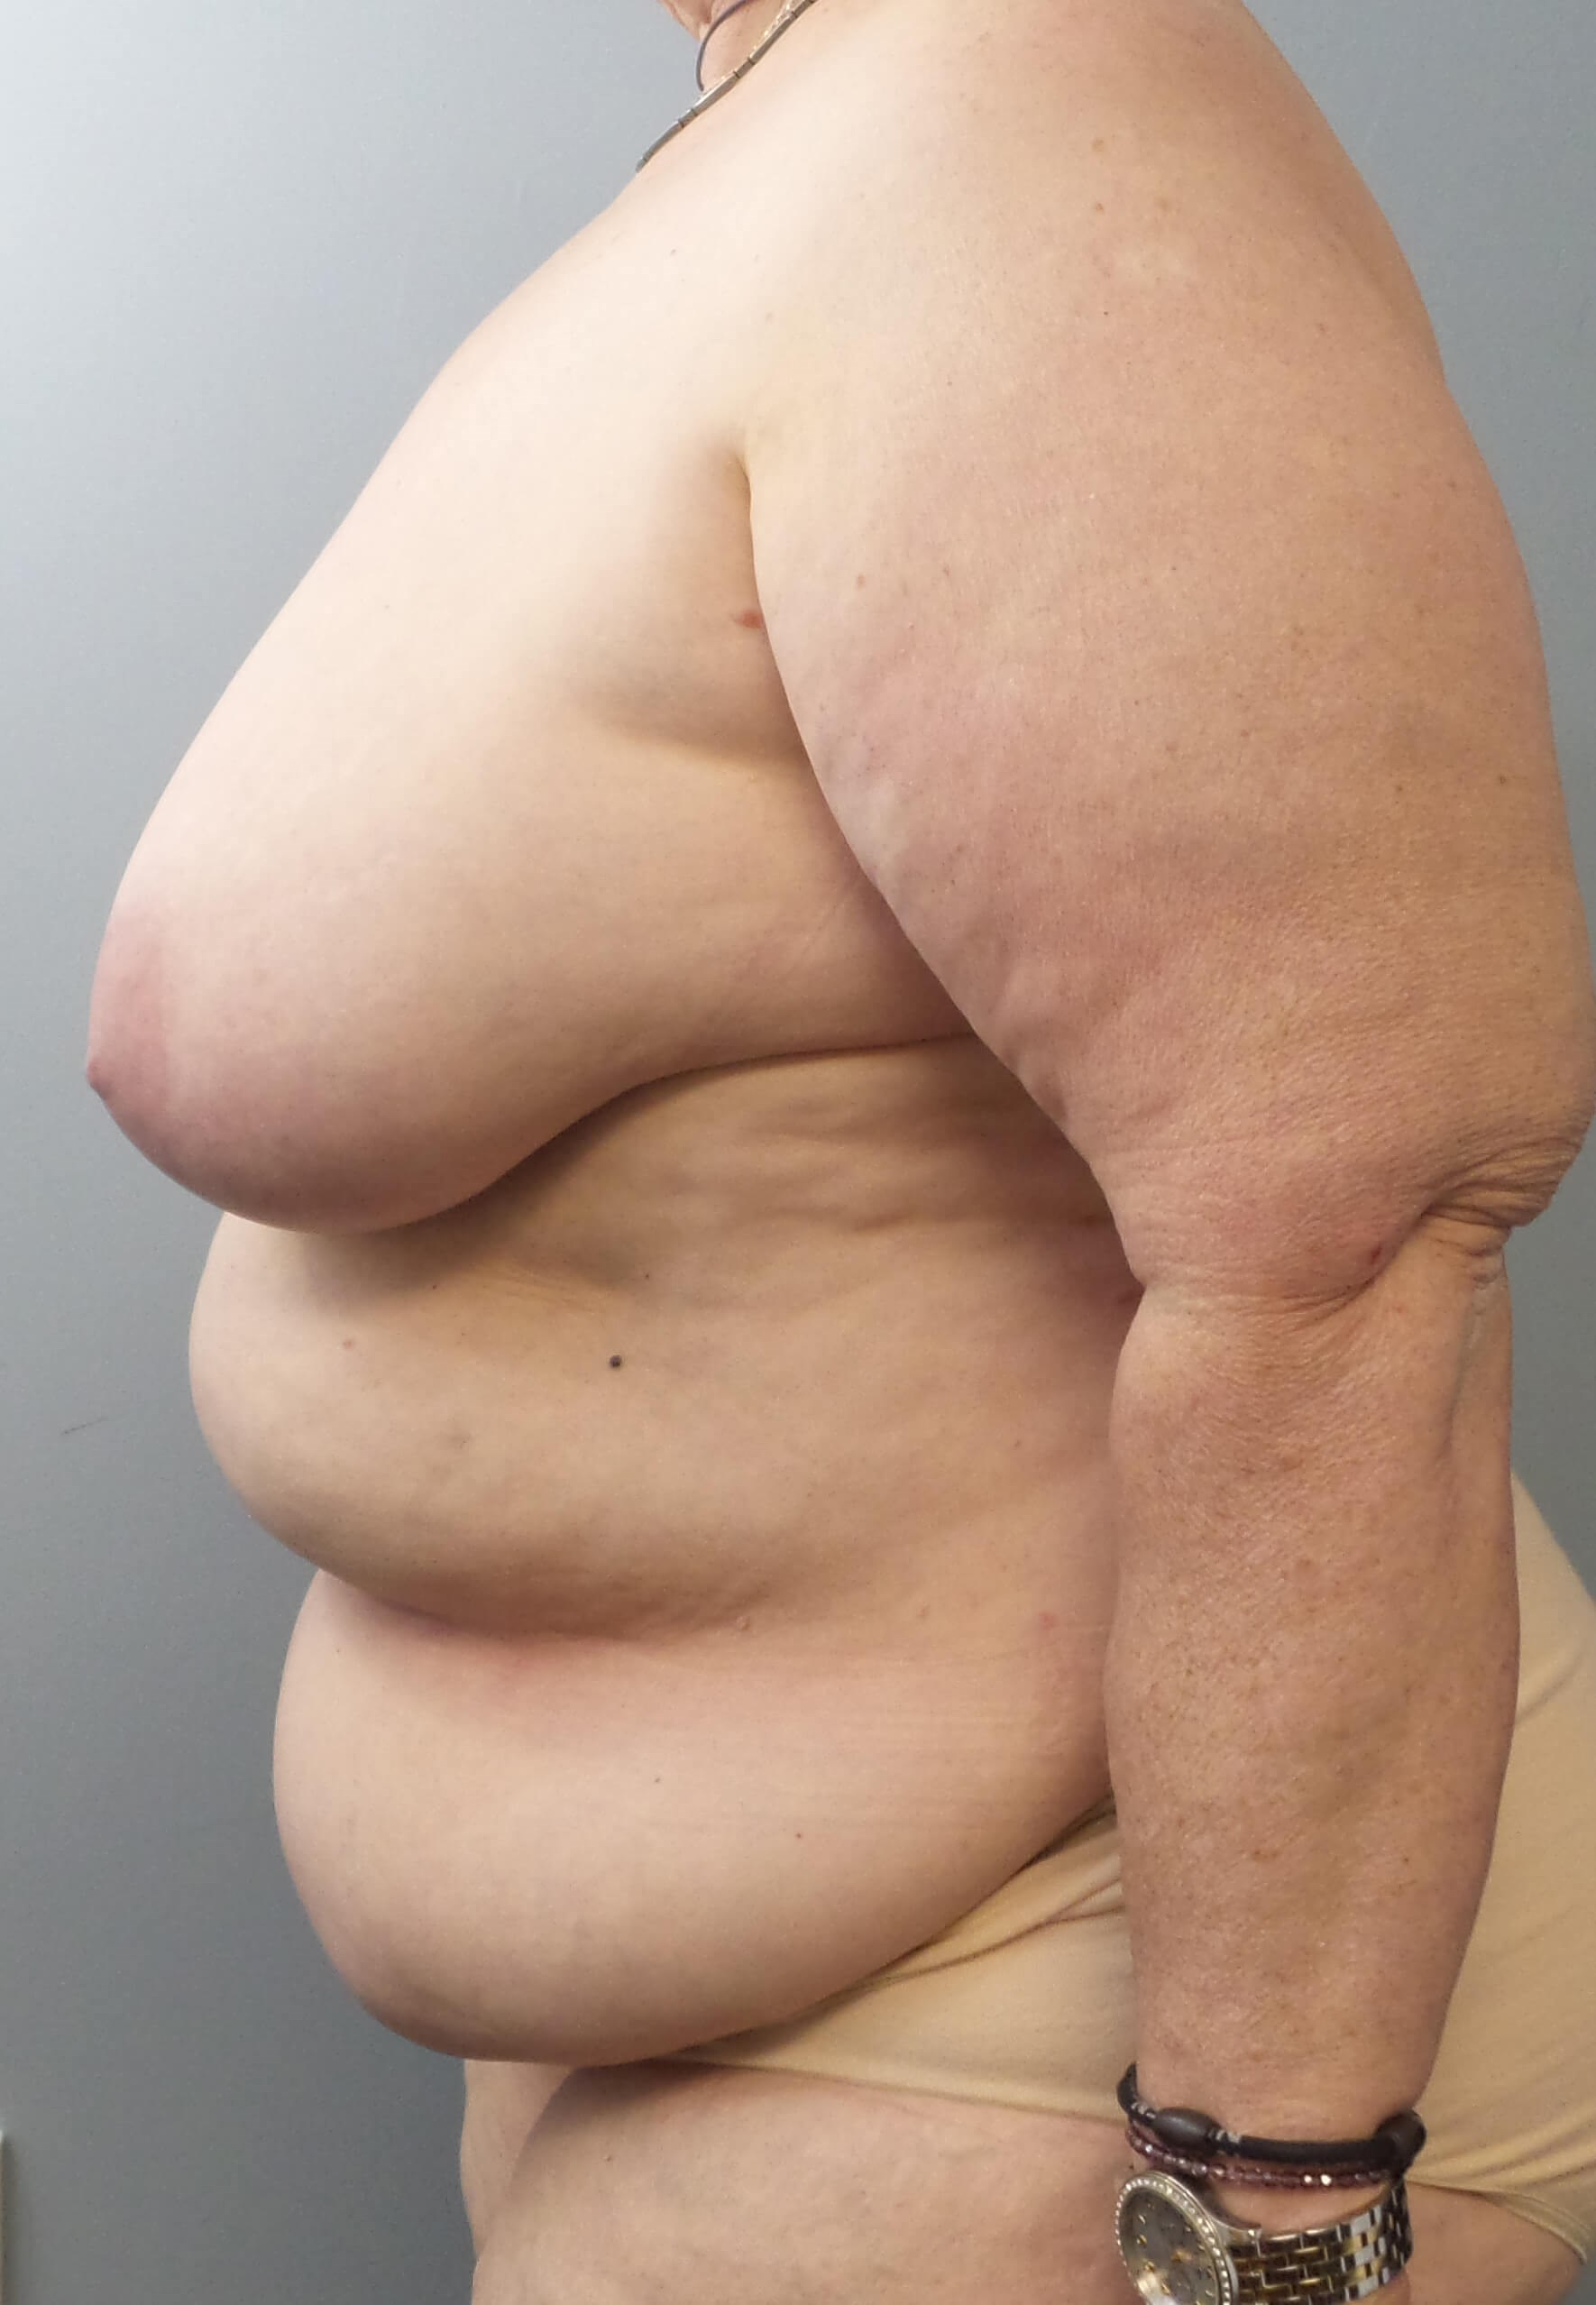 DIEP Flap Breast Surgery Before